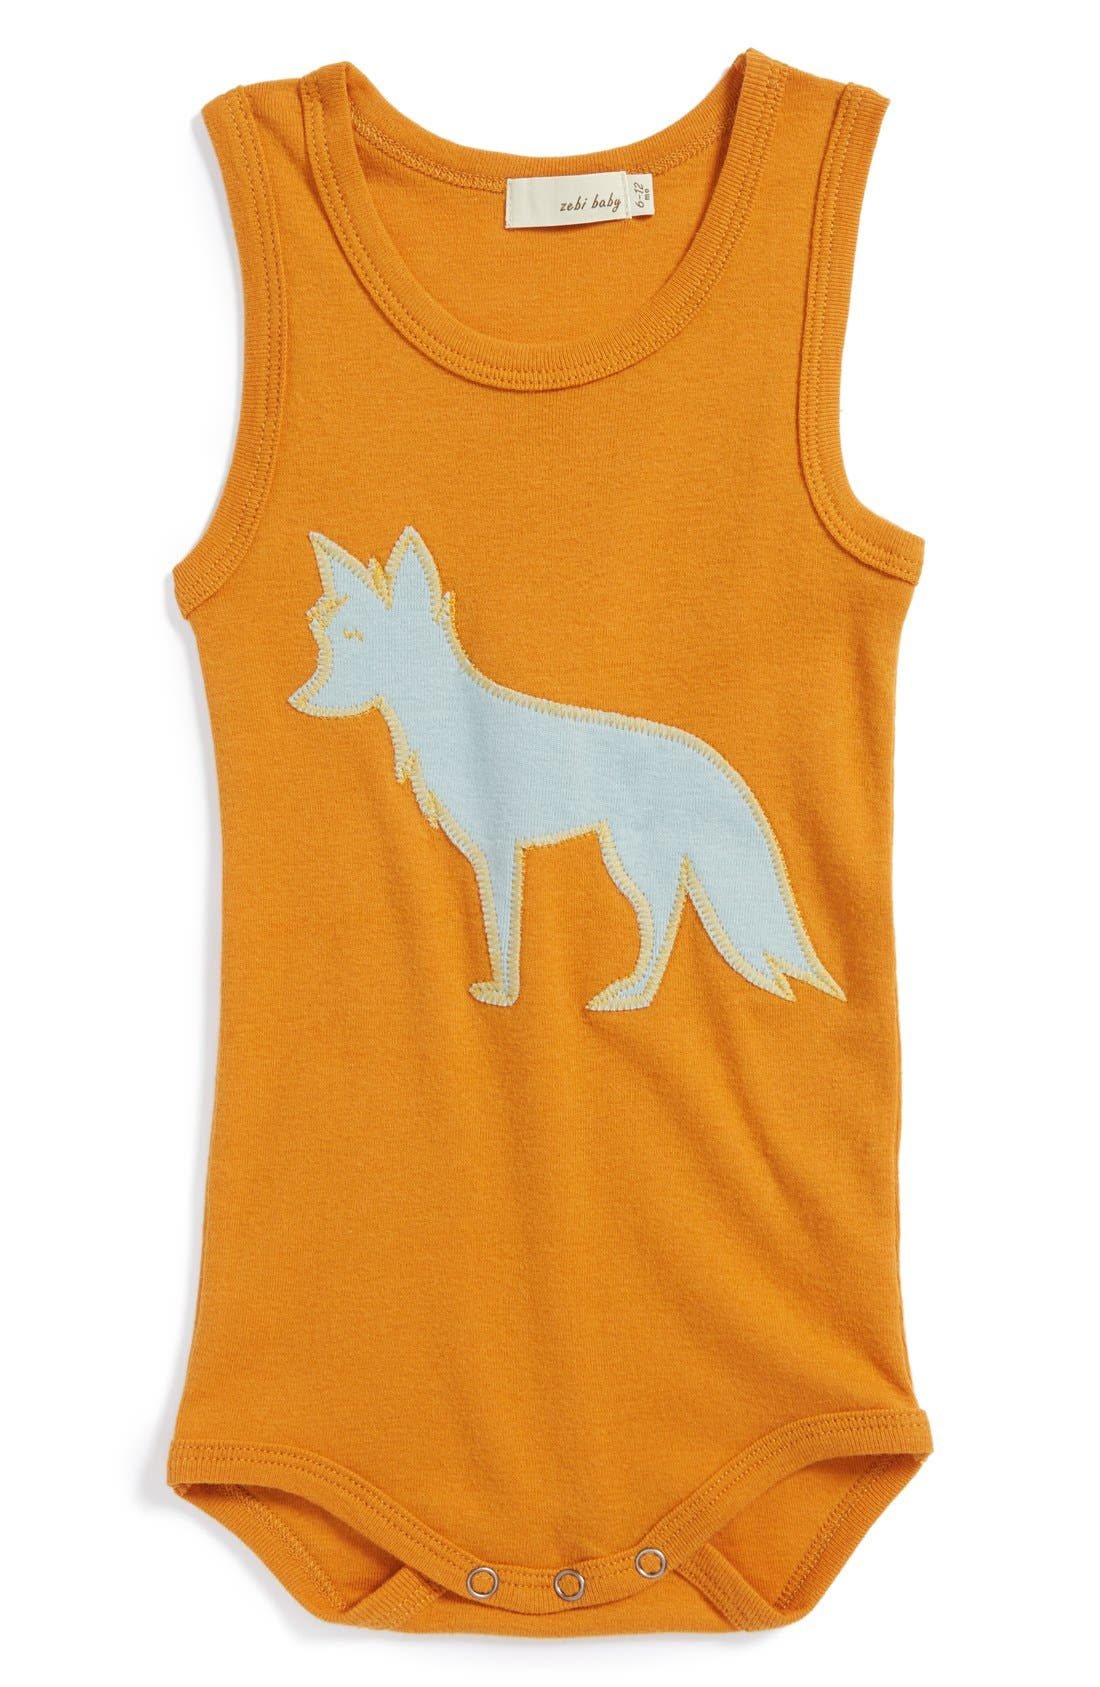 Alternate Image 1 Selected - Zebi Baby 'Fox' Organic Cotton Bodysuit (Baby Boys)